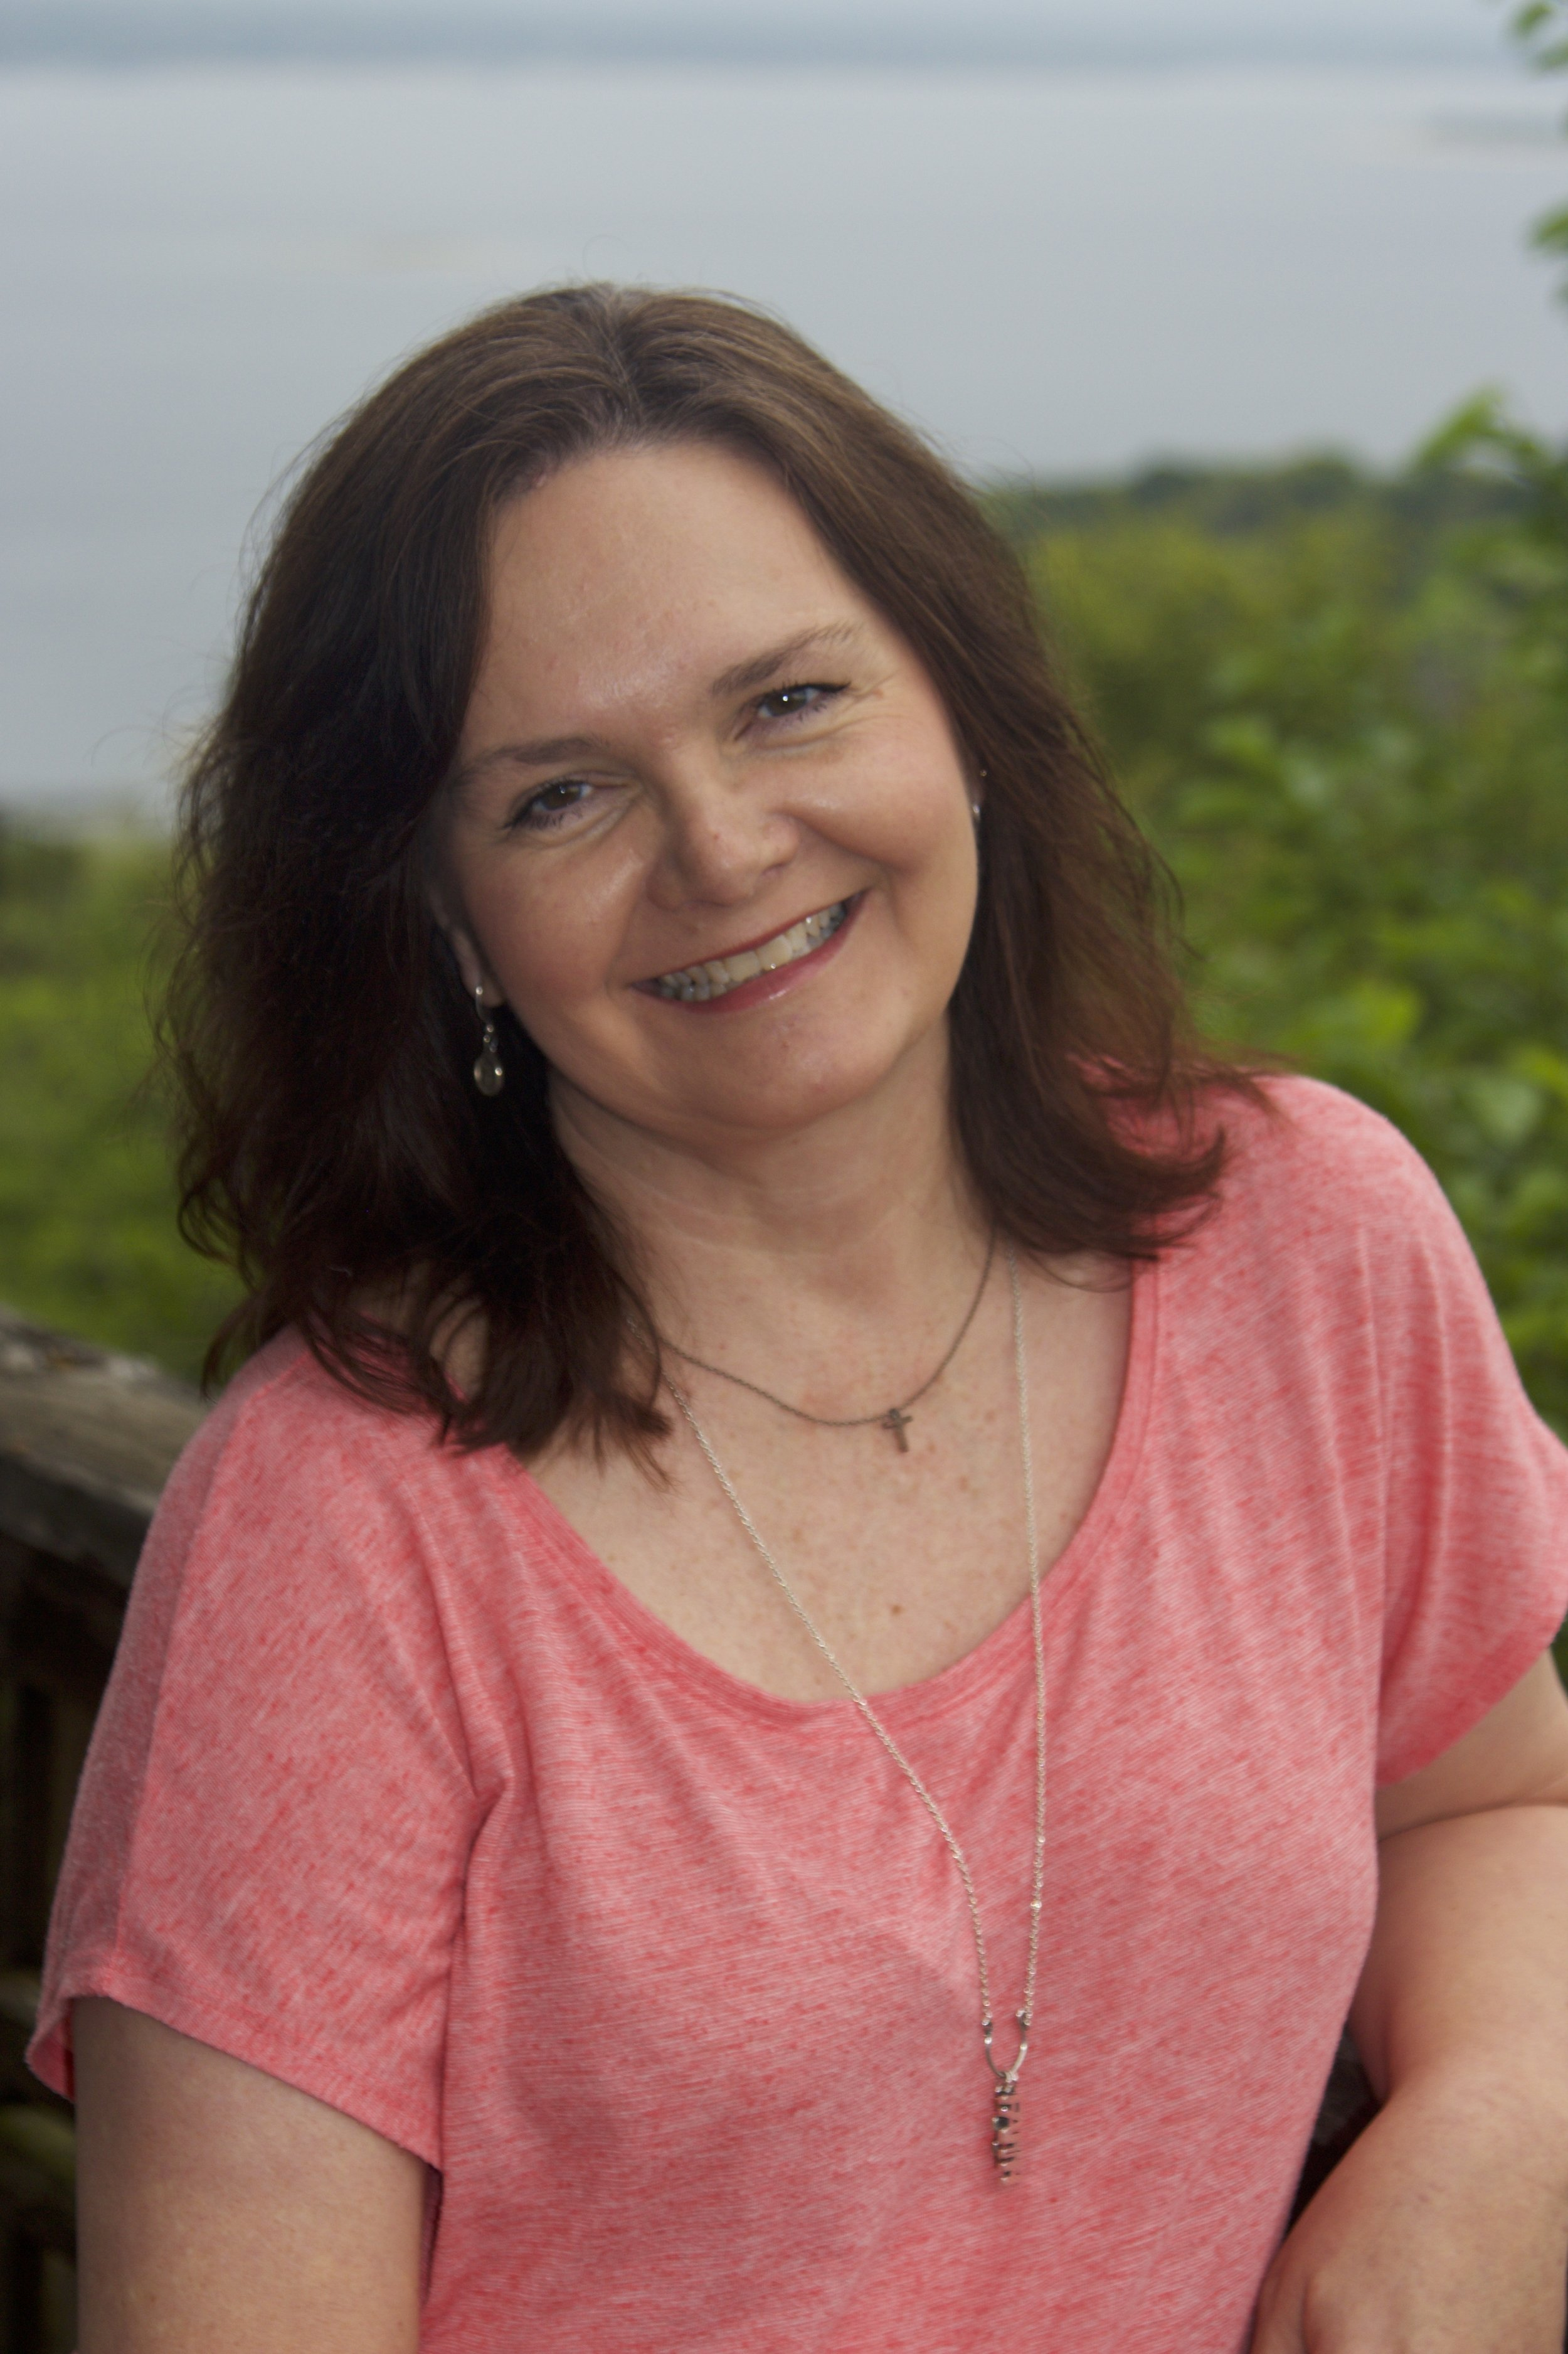 LoriAnn Lavallee, Director of Children & Family Ministries